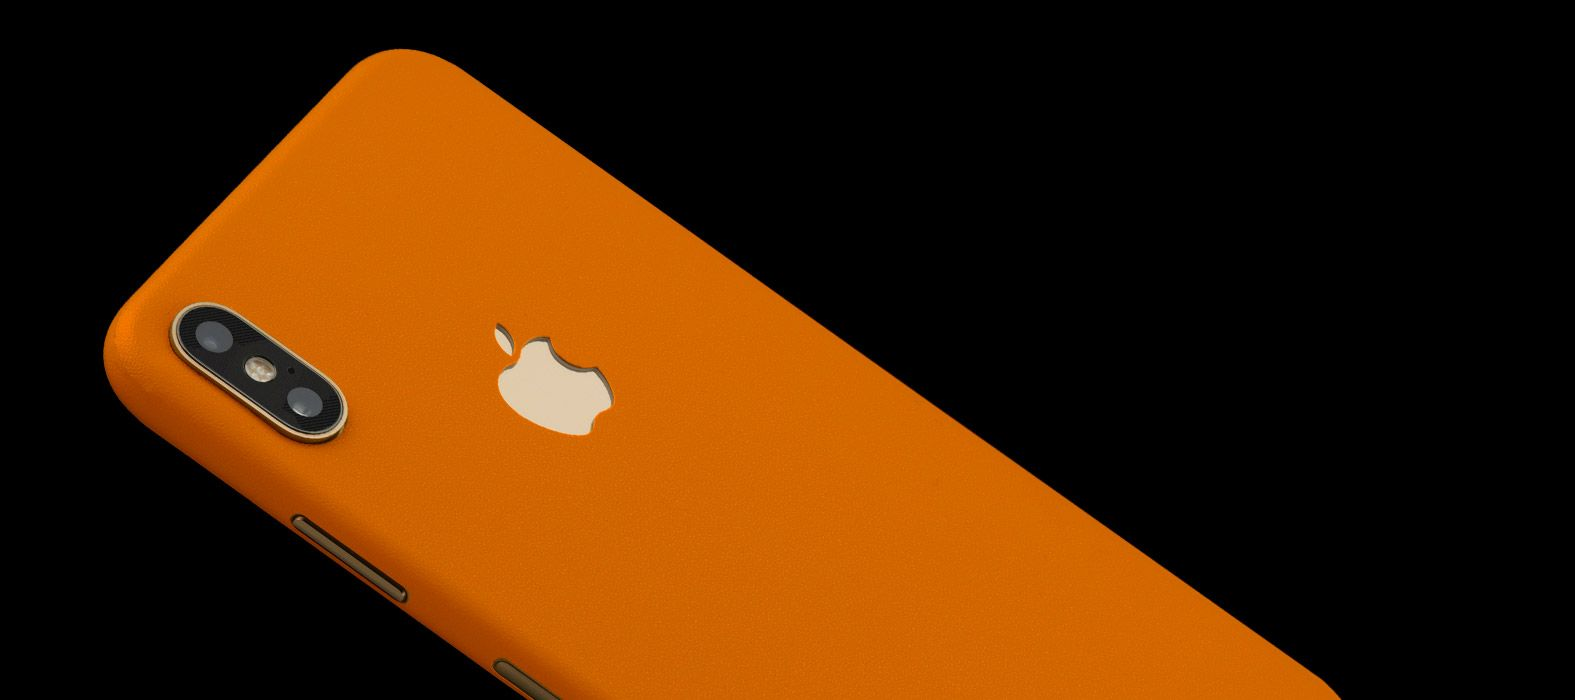 iPhone XS Max Orange Sandstone Skins